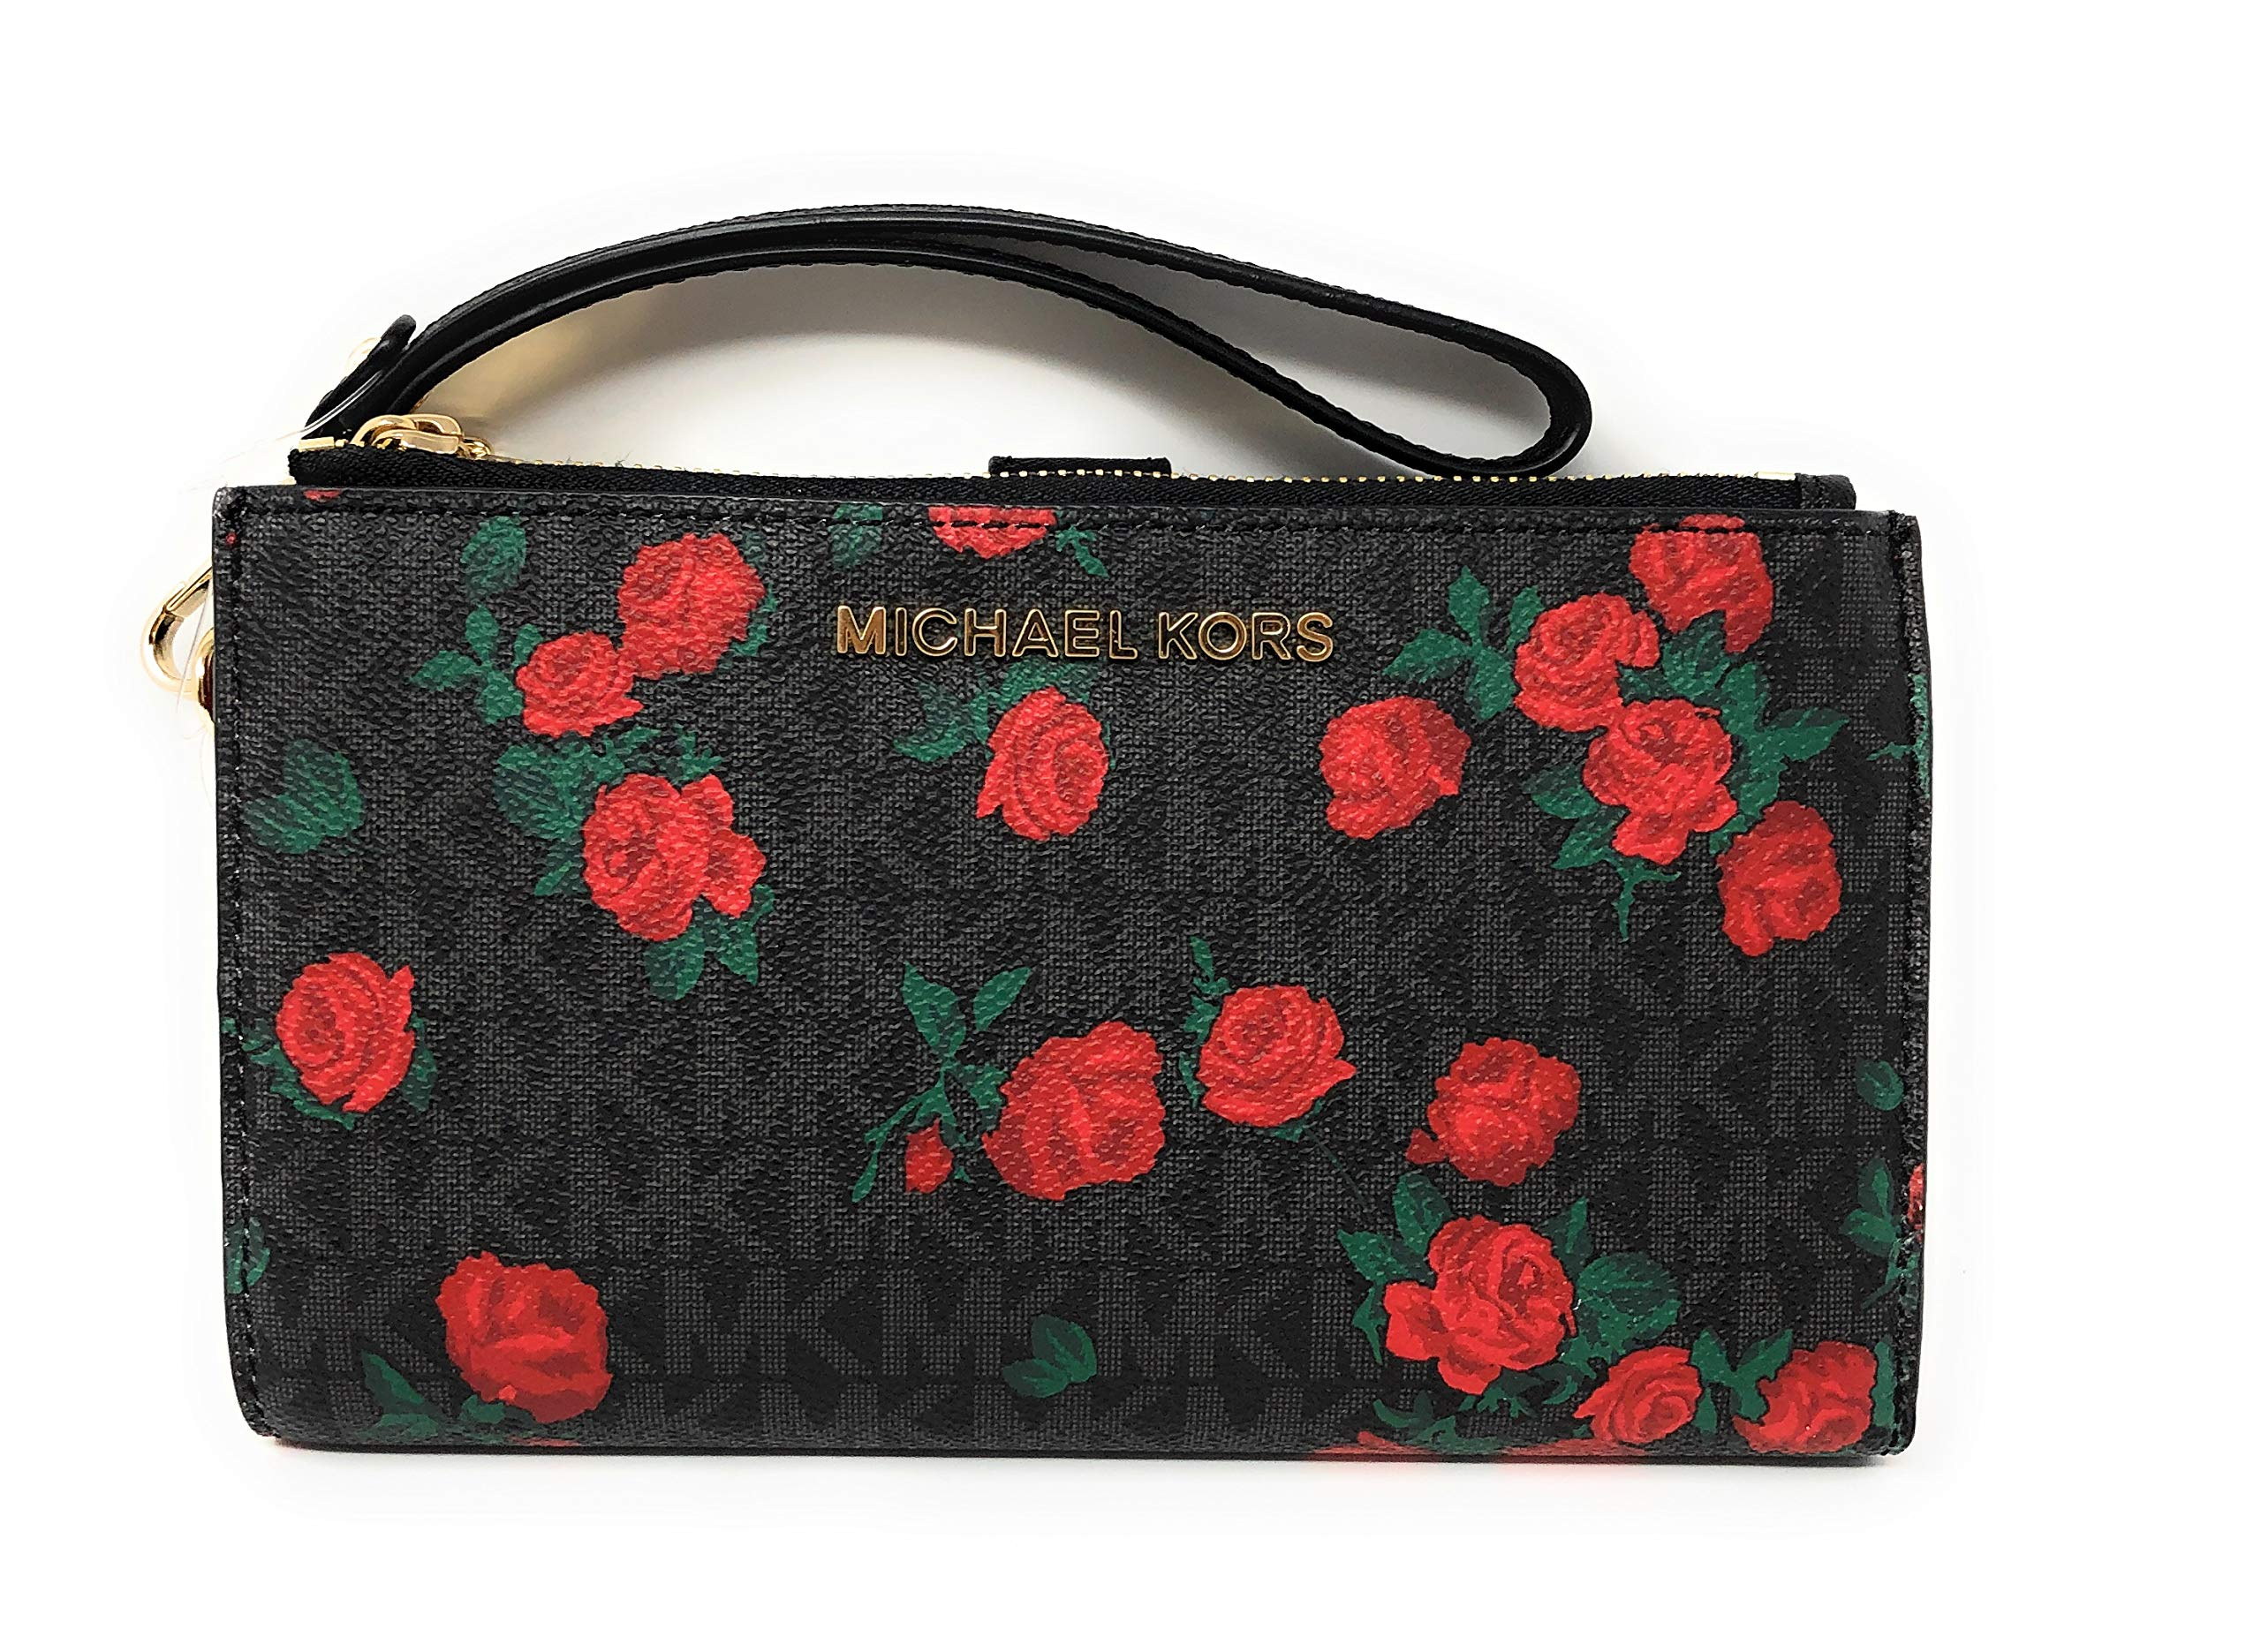 Michael Kors Jet Set Travel Double Zip Saffiano Leather Wristlet Wallet (PVC Black/Red Rose)